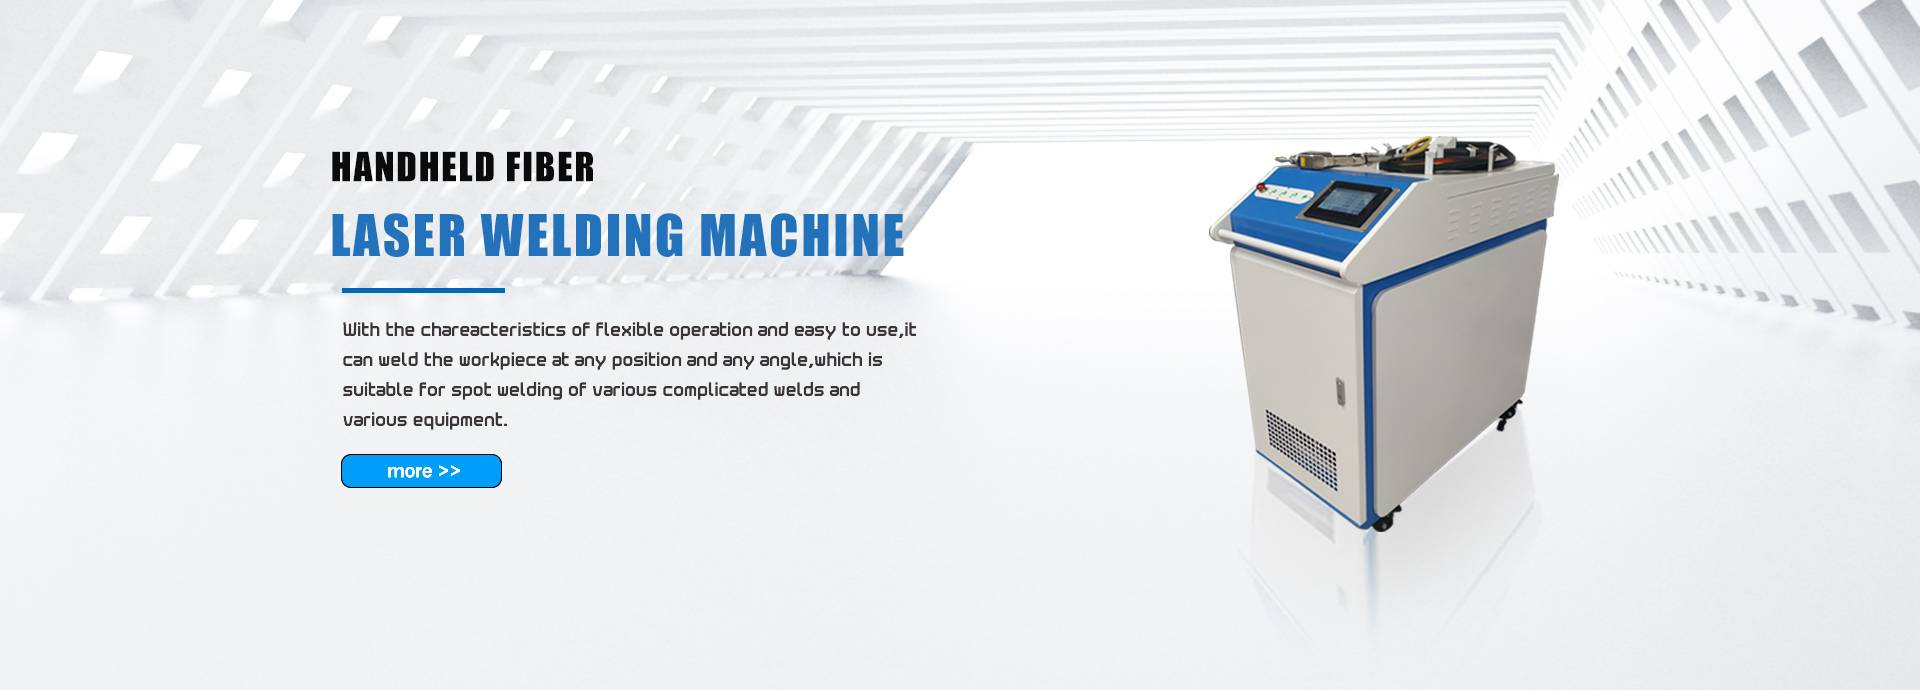 With the chareacteristics of flexible operation and easy to use,it can weld the workpiece at any position and any angle,which is suitable for  spot welding of various complicated welds and various equipment.